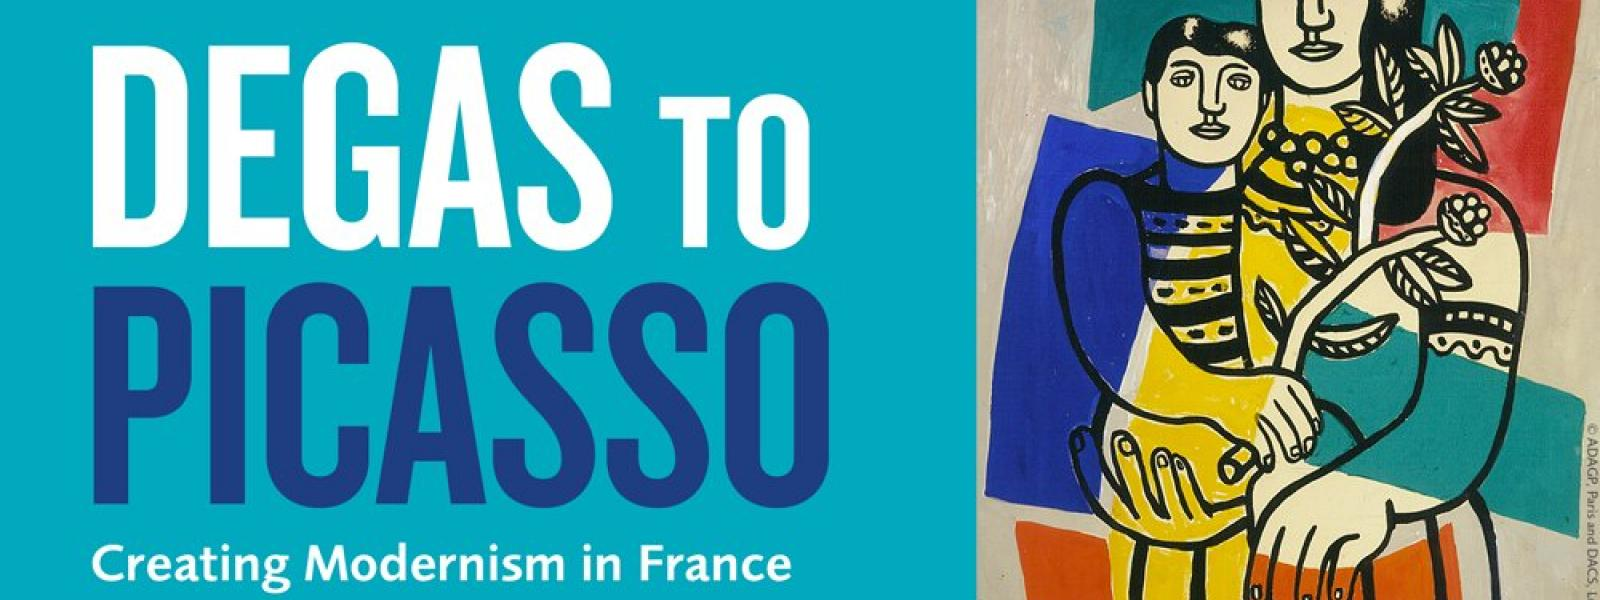 Degas to Picasso exhibition banner